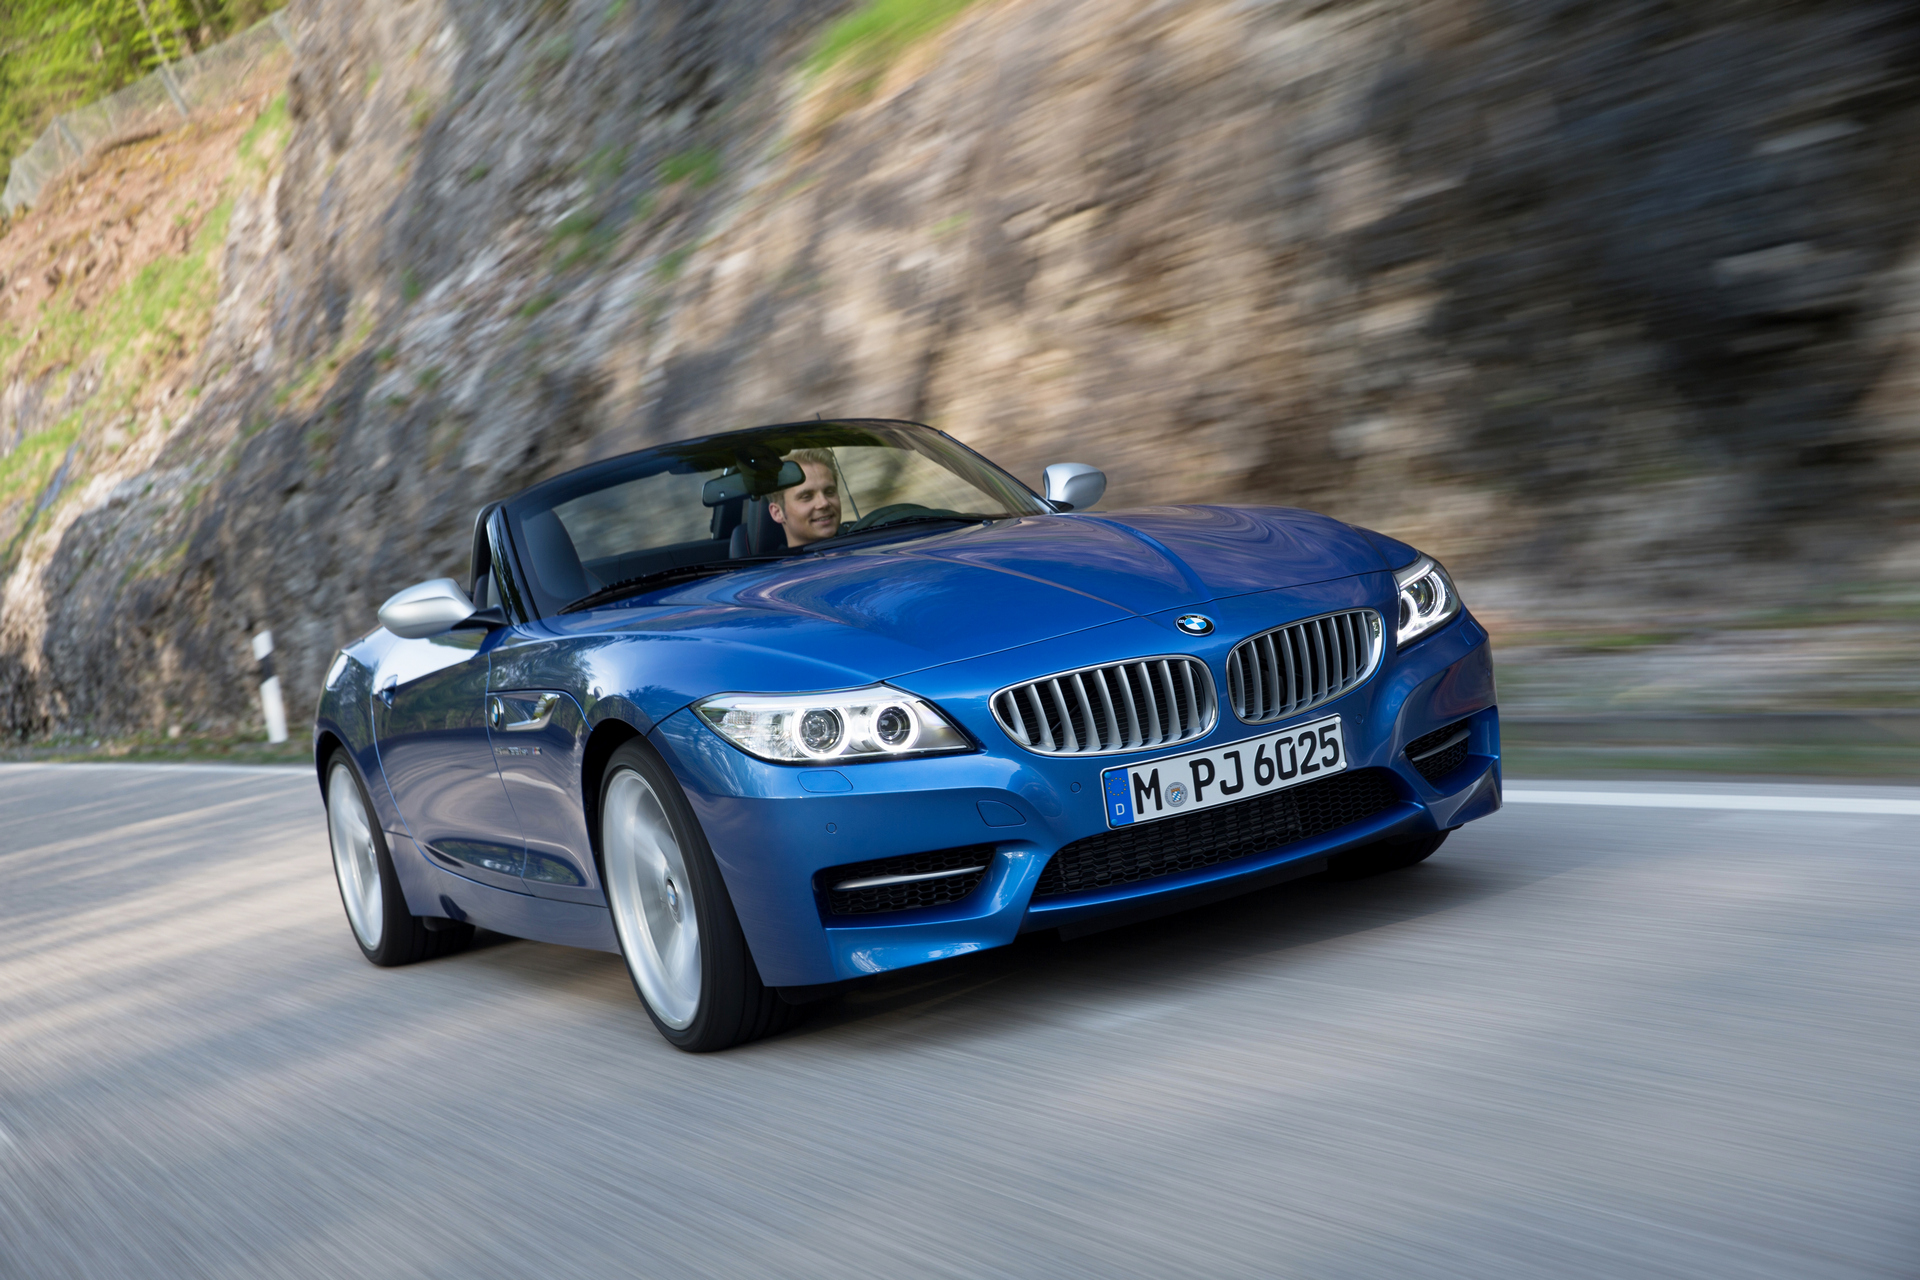 Carrrs Auto Portal U003e Trend U003e Rating U003e Top 10 Sports Cars Under 50k U003e 2016  BMW Z4 Roadster © BMW AG